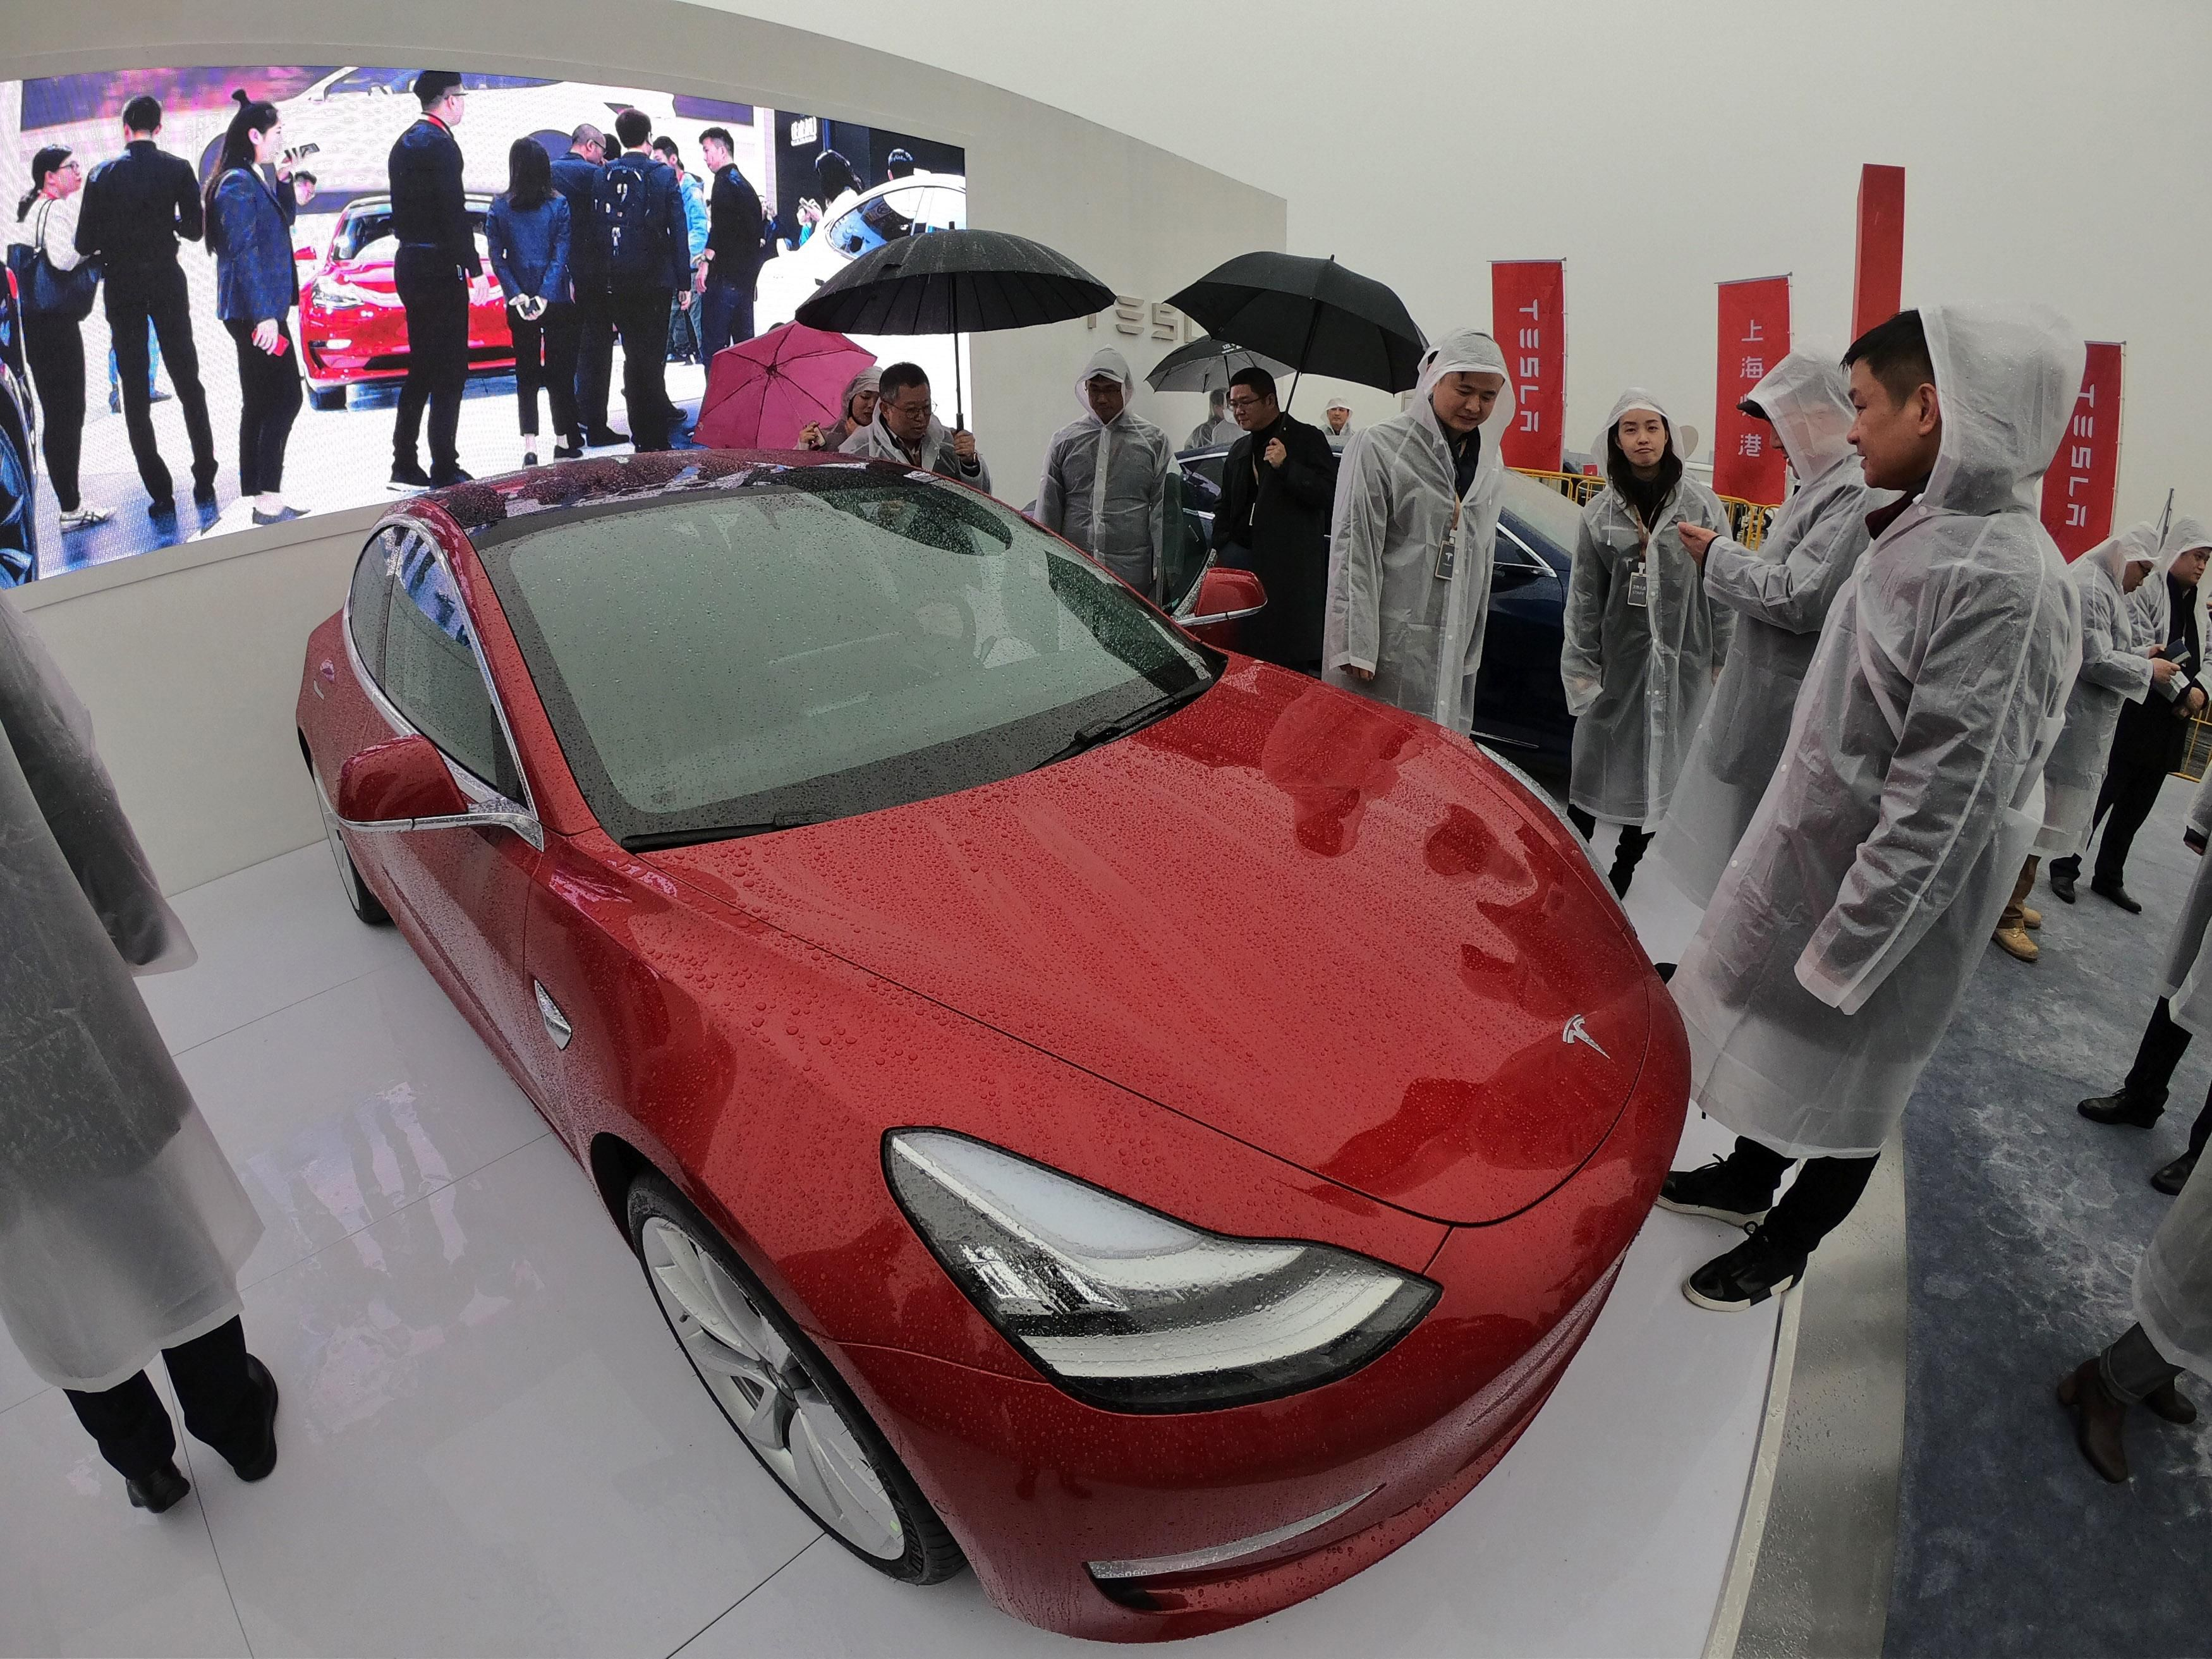 Tesla's China-made Model 3 may be priced in $43,400-$50,700 range: Bloomberg